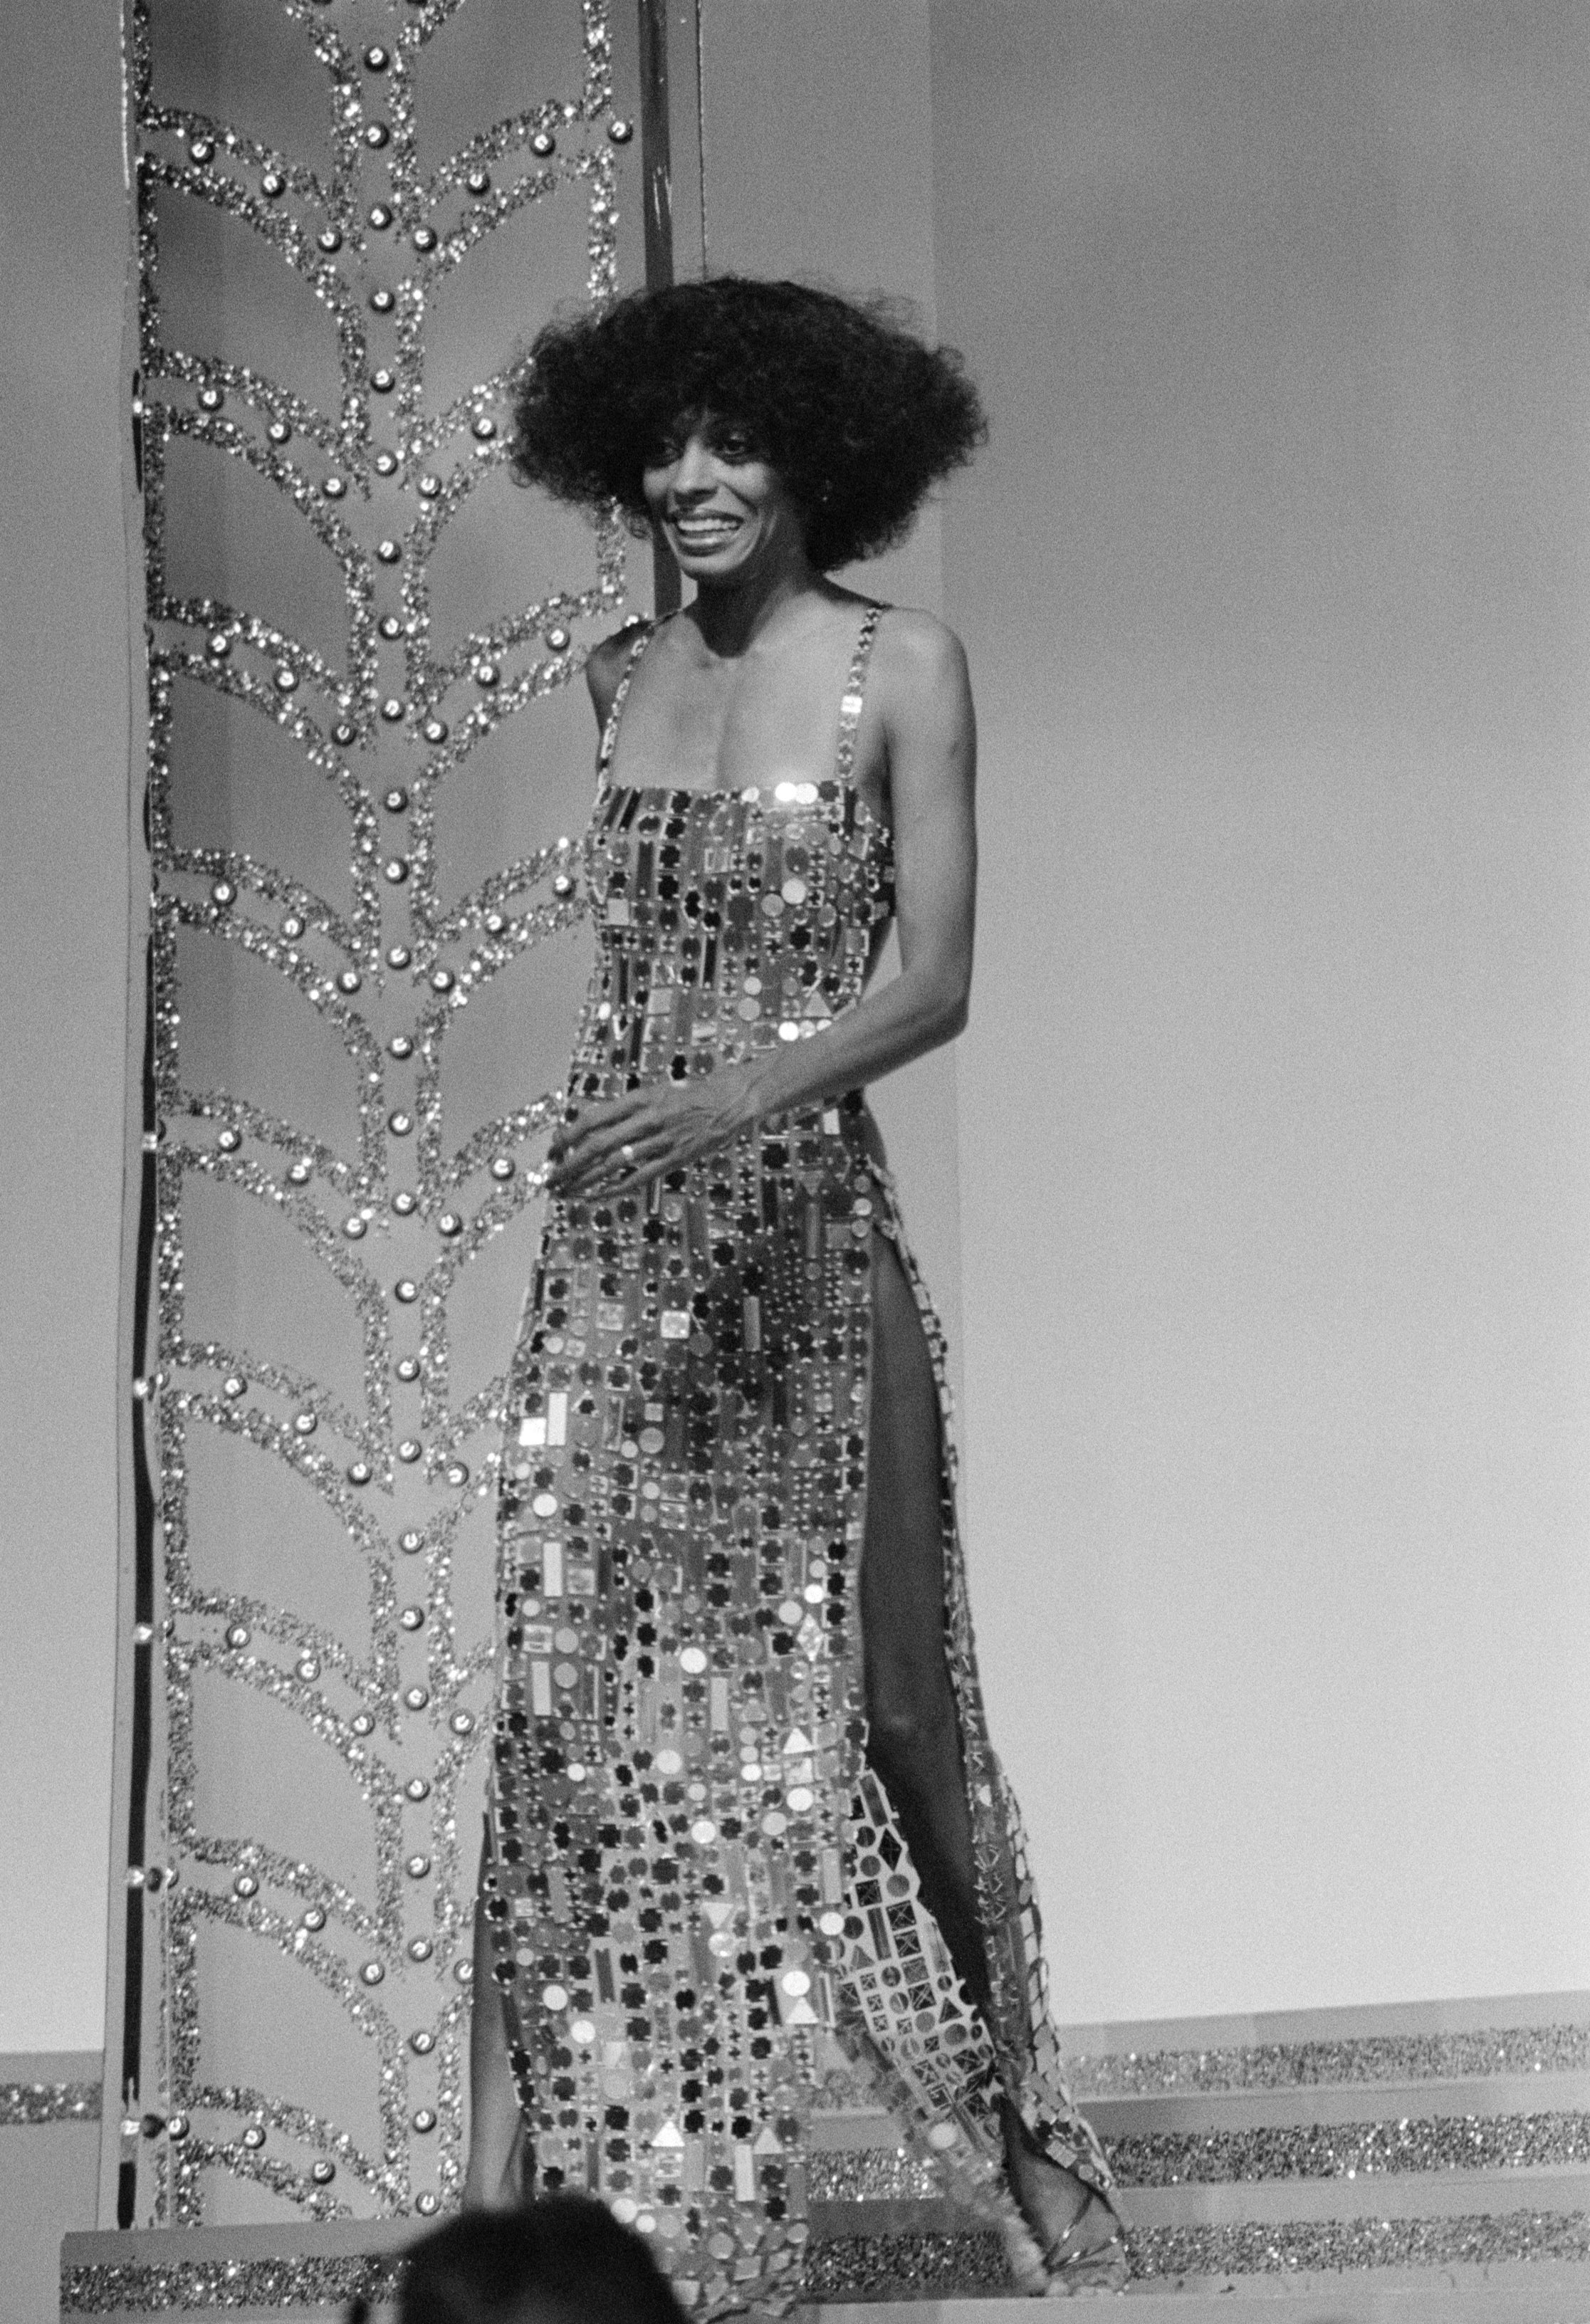 Diana Ross Vintage Outfits Trending Now - Essence